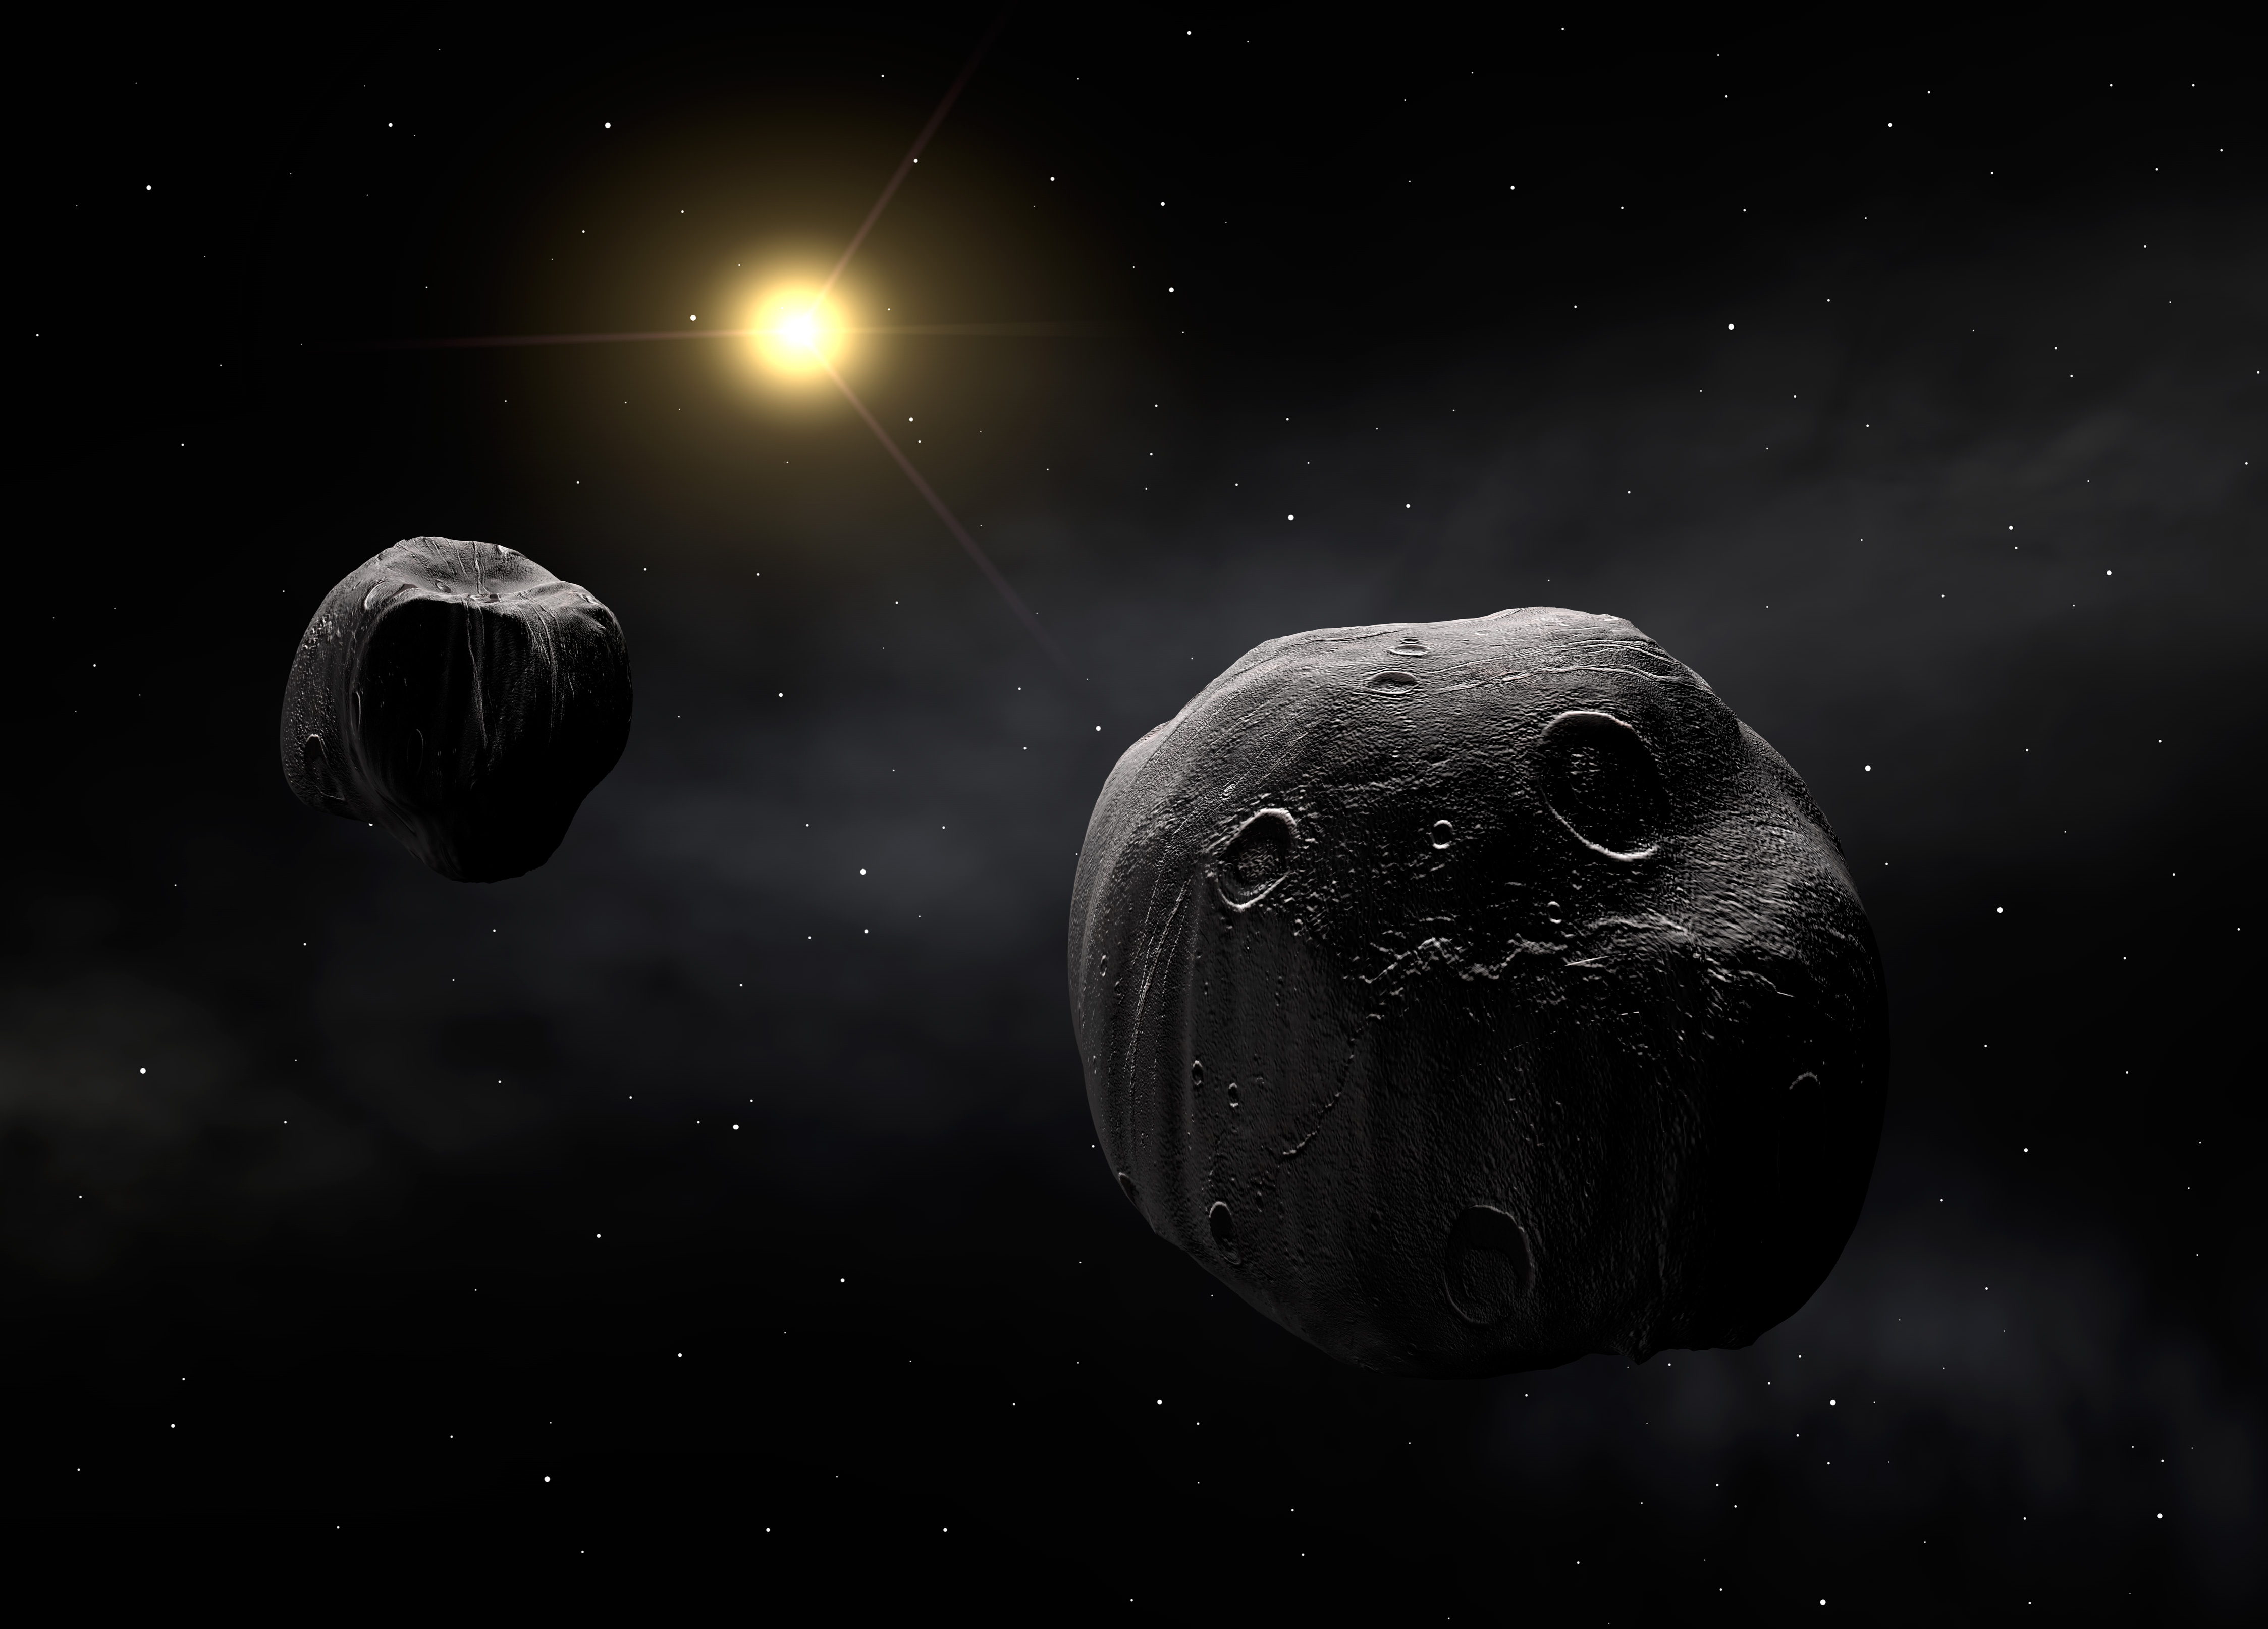 Artist's impression of the double asteroid Antiope. Both components are shown to have a quasi-spherical shape.